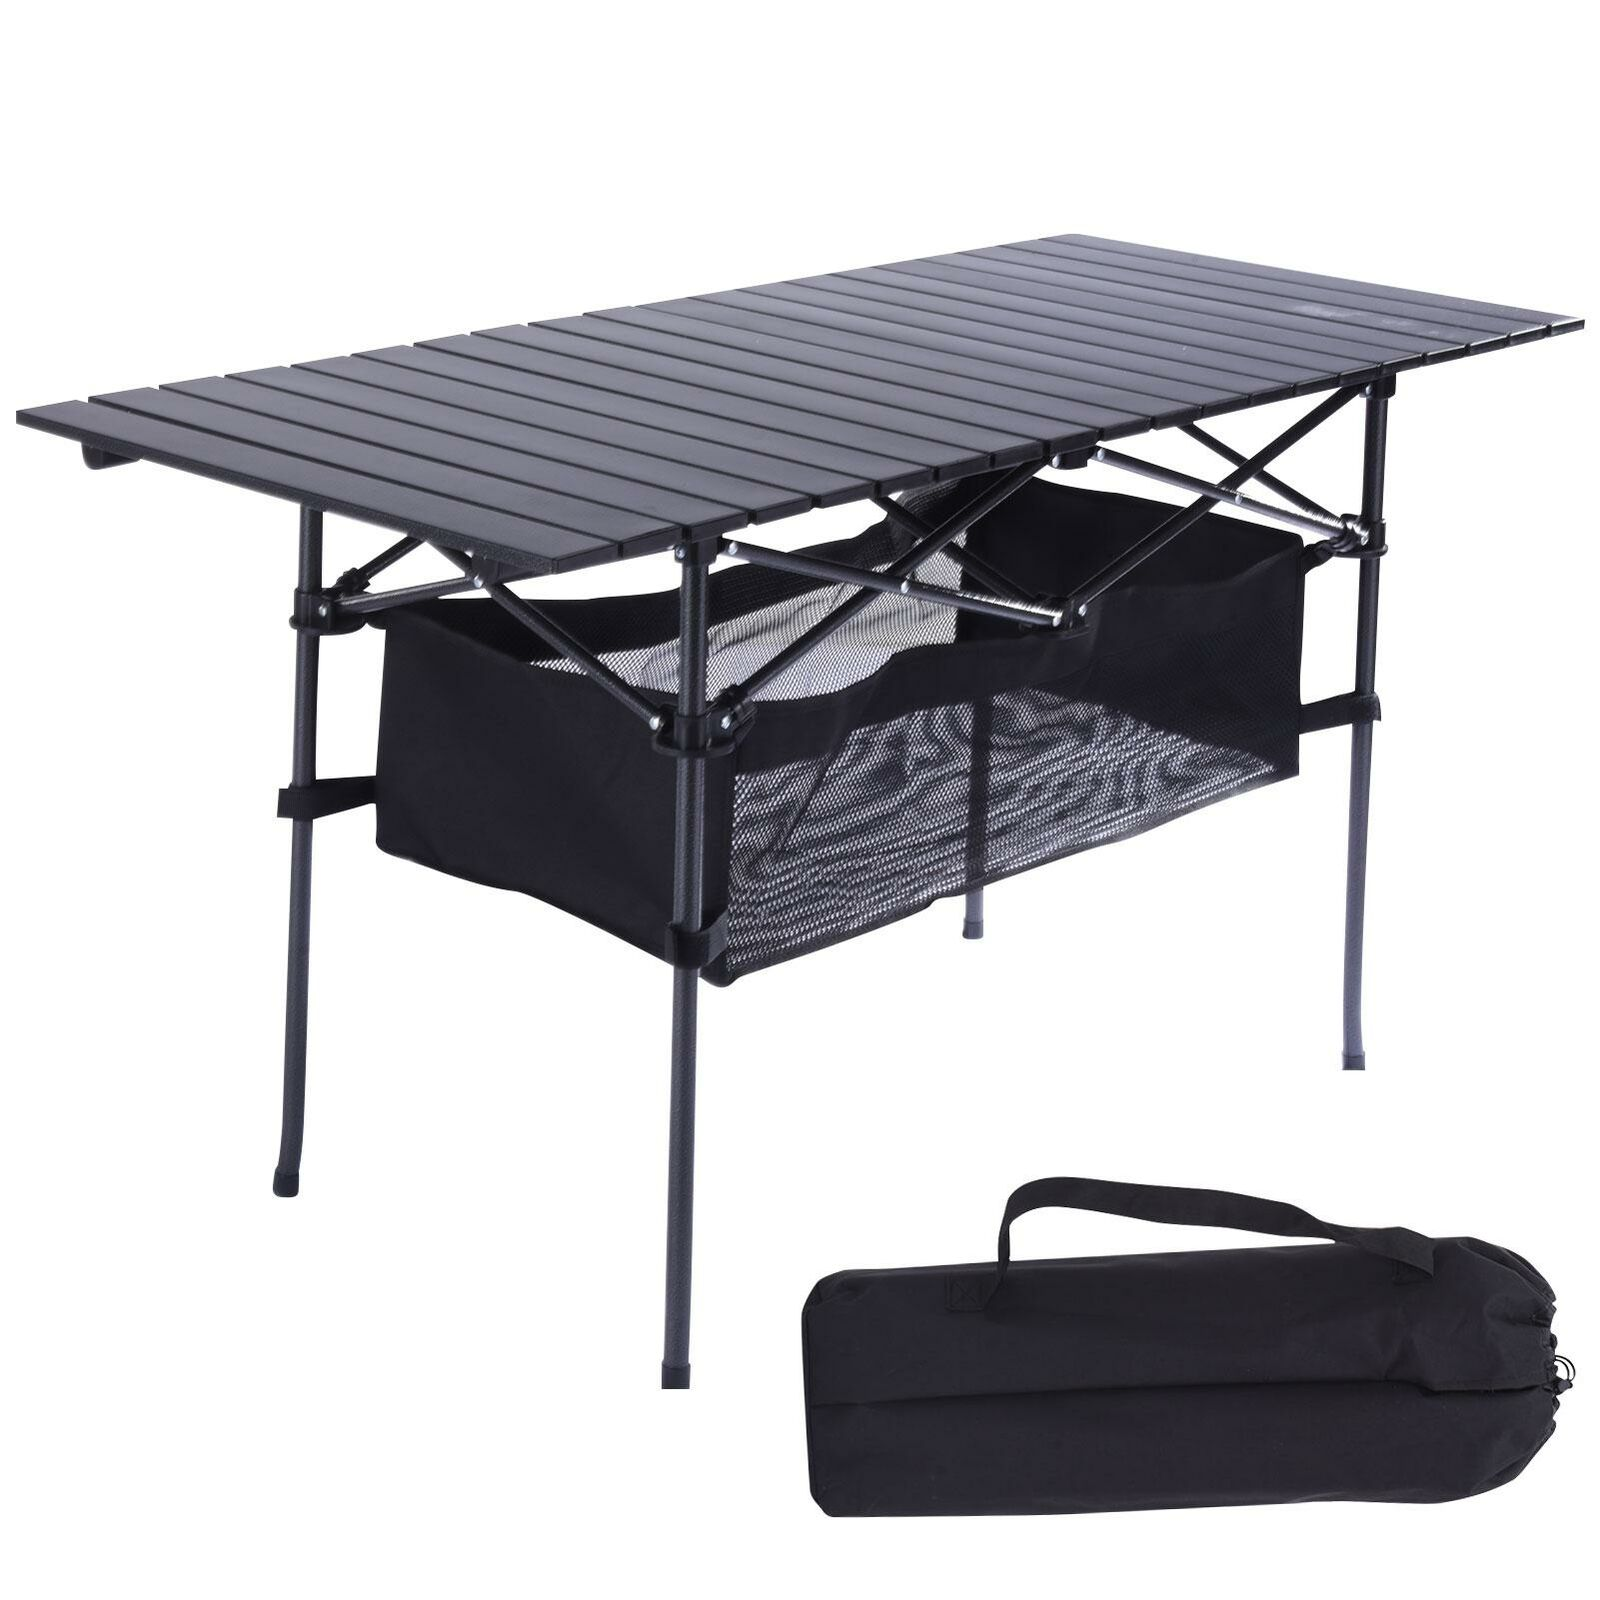 Portable Folding Aluminum Roll Up Table Lightweight Outdoor Camping Picnic Bag - $56.90